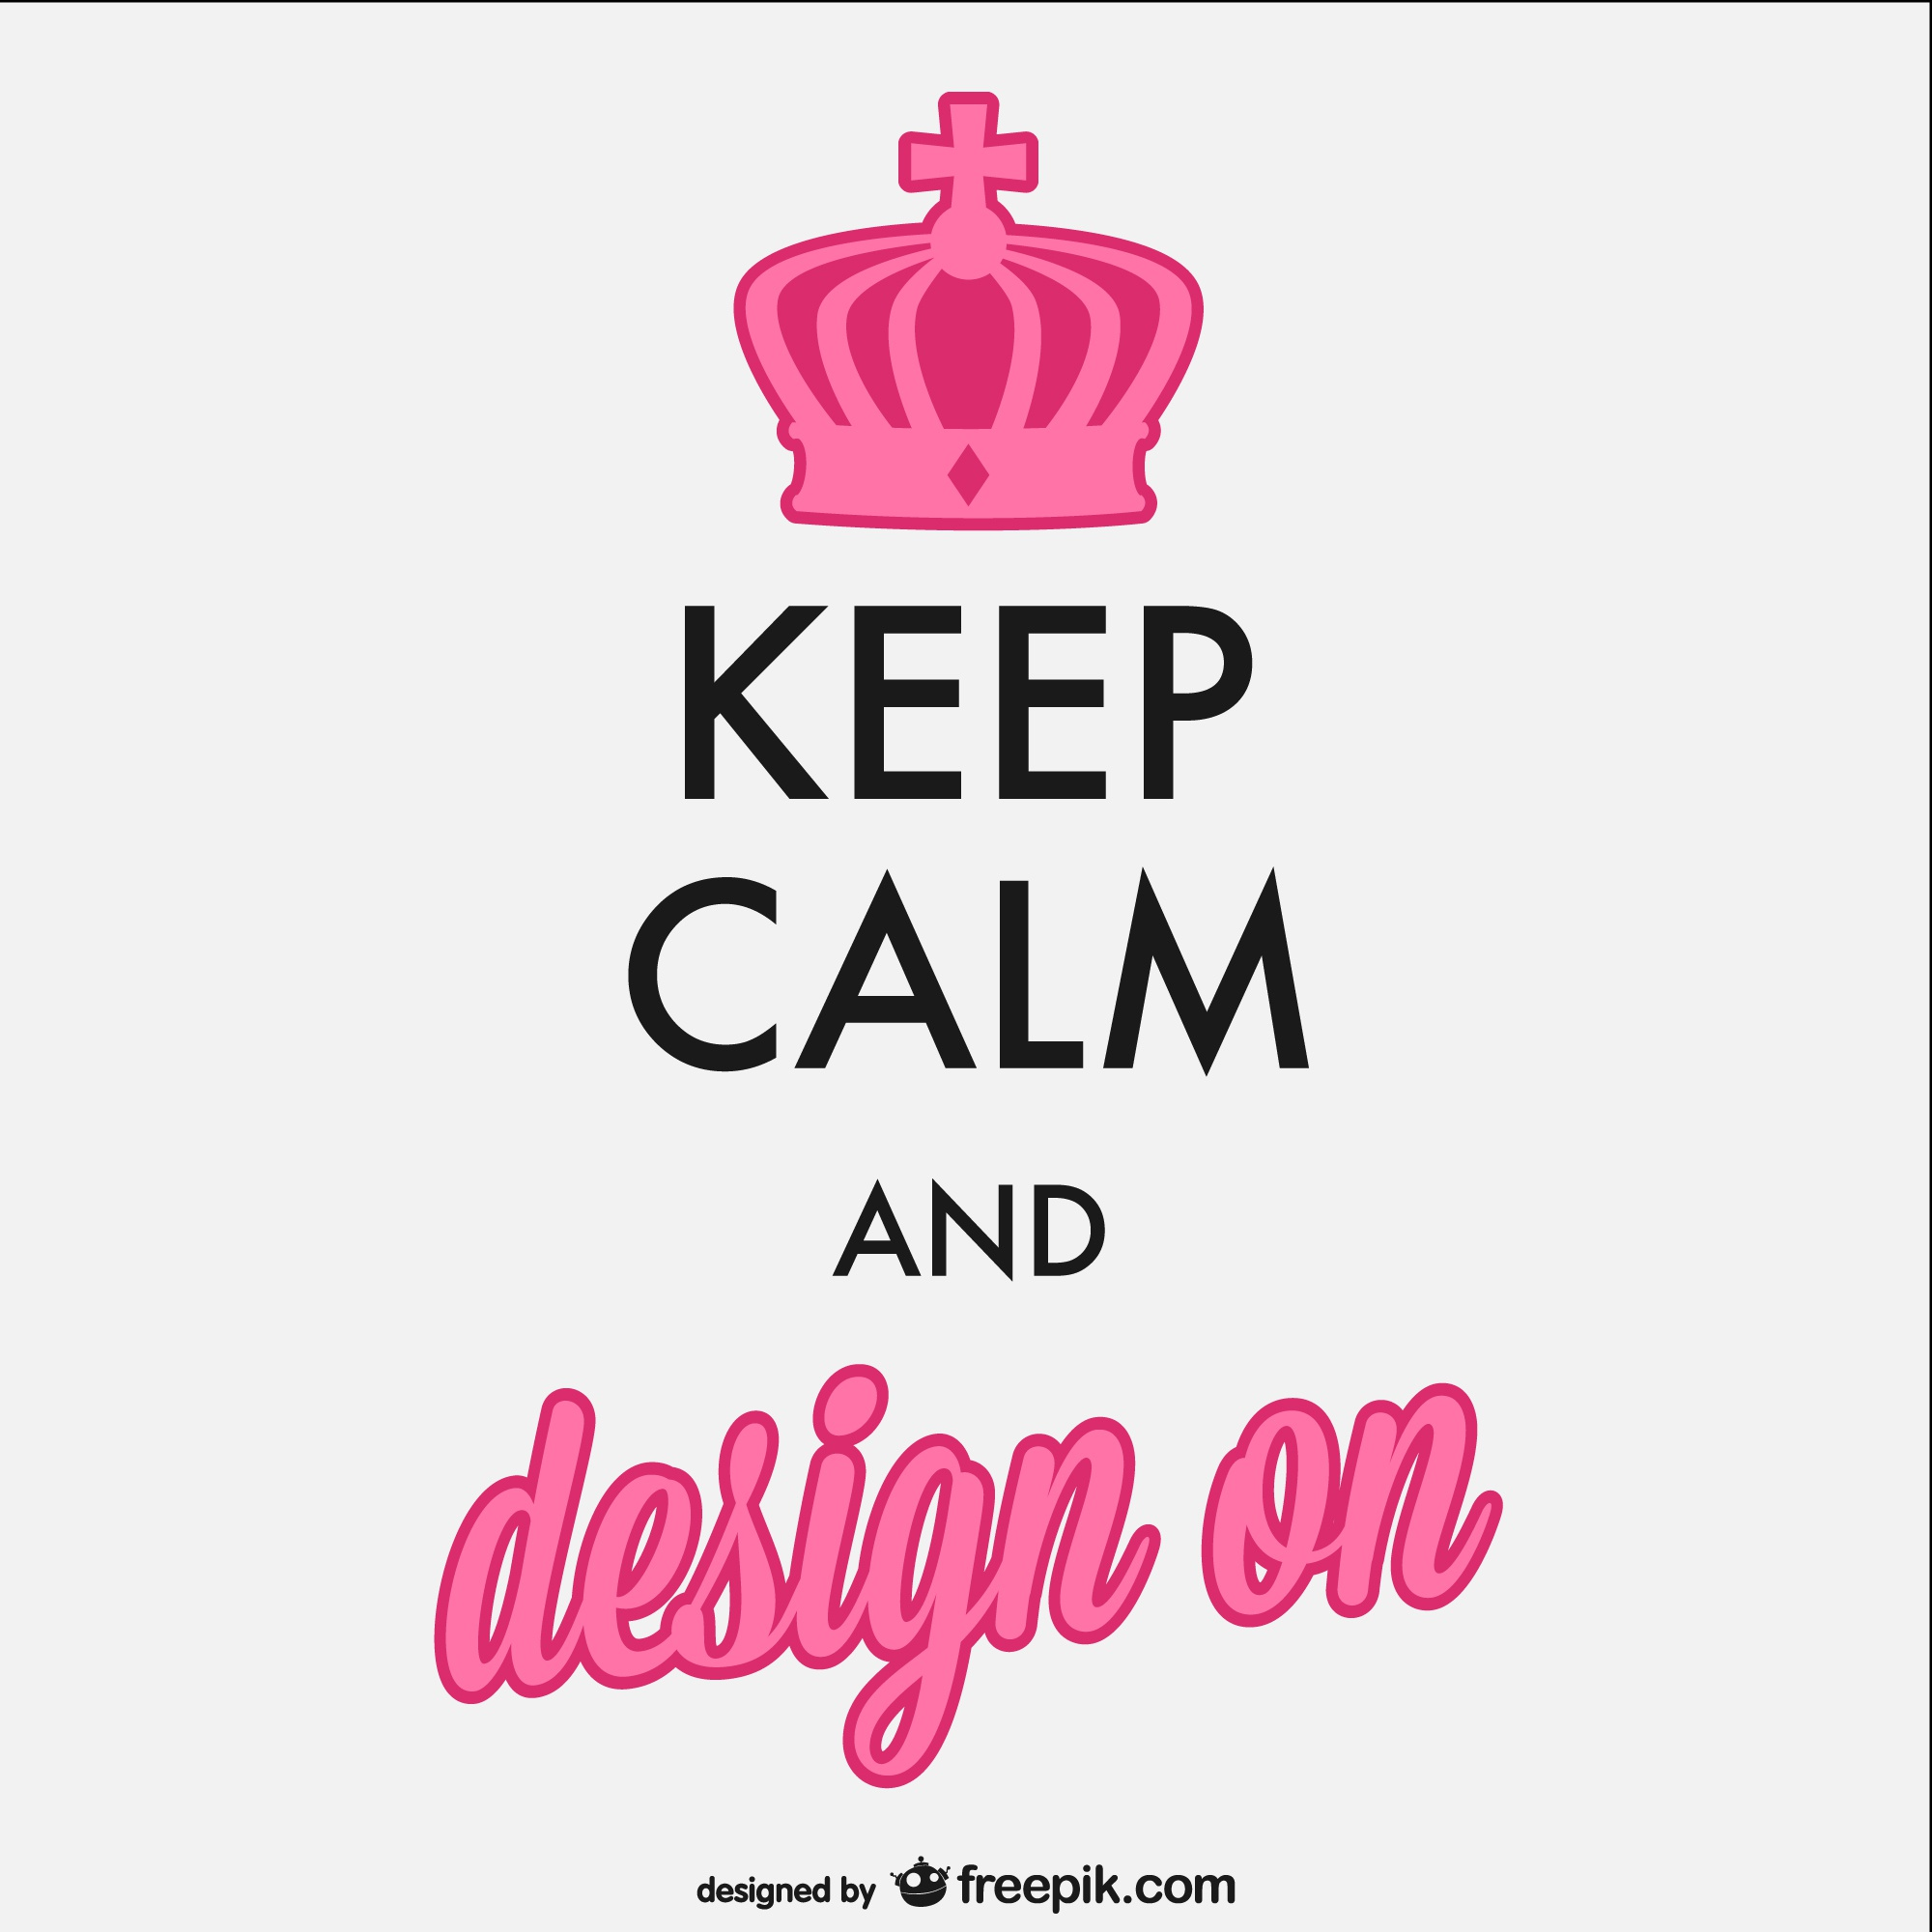 Keep calm and design poster